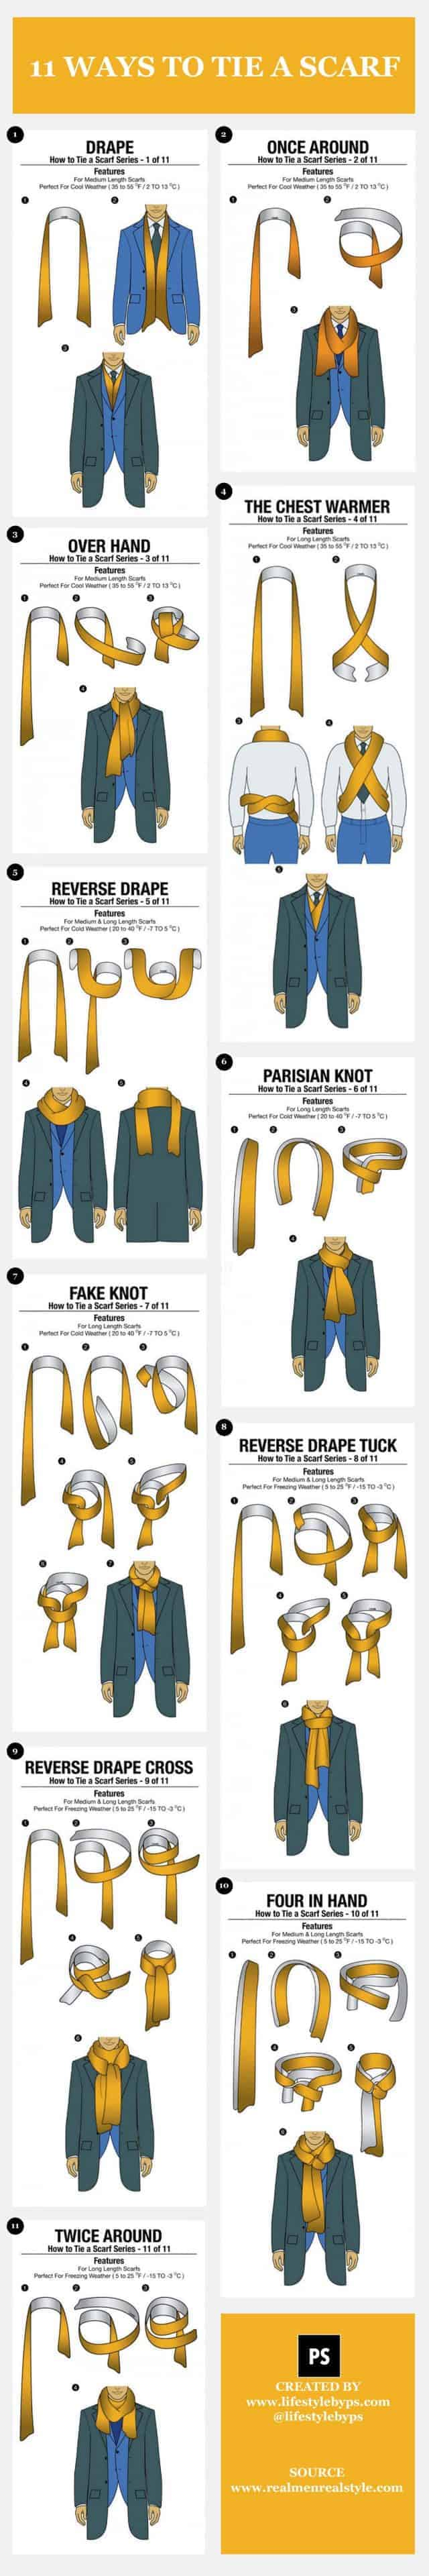 11-simple-ways-to-tie-a-scarf_52c9669e796c4